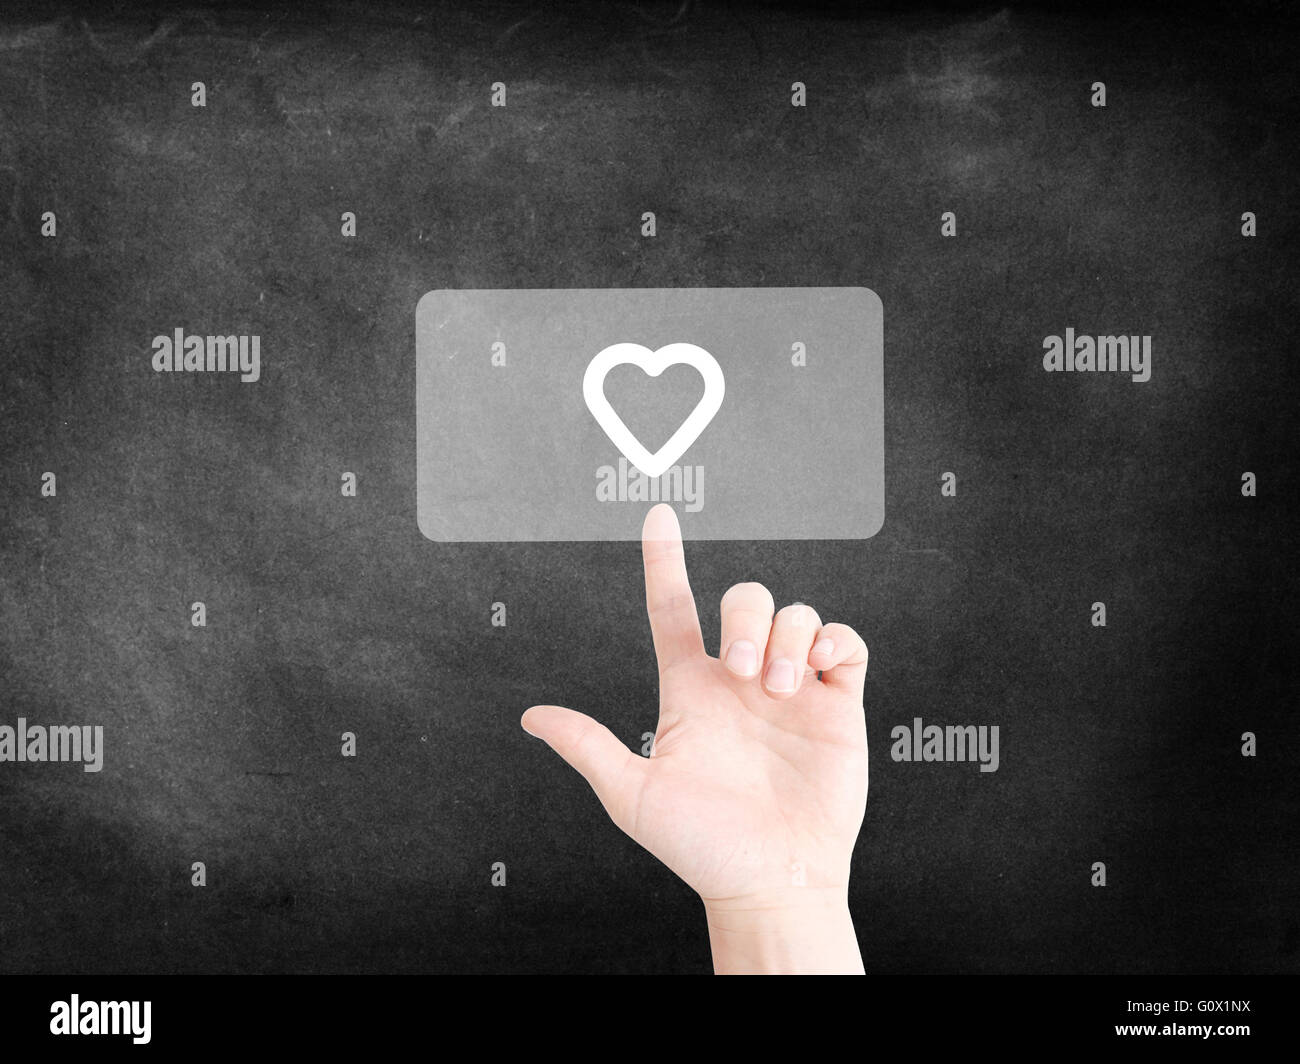 Finger tapping on an icon to symbolize a heart - Stock Image